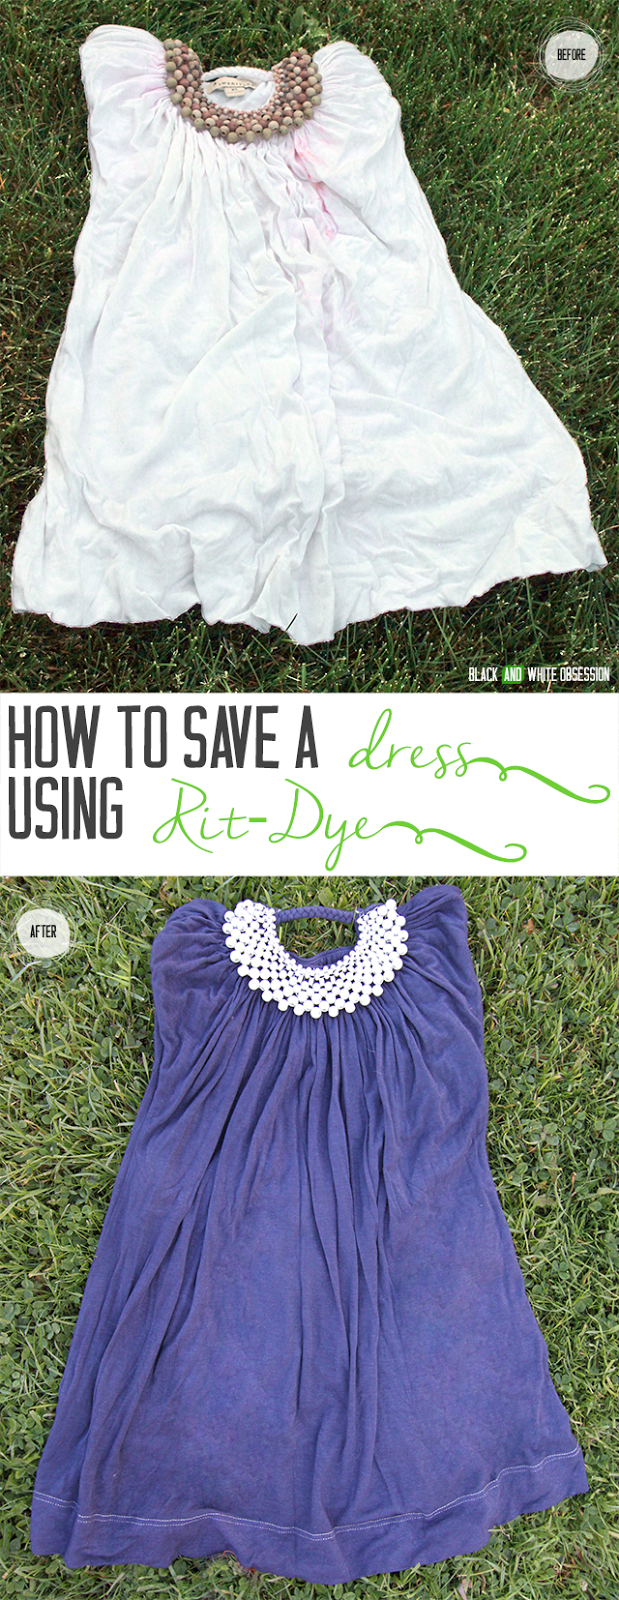 How to Save Clothing Using Rit Dye- Before and After | www.blackandwhiteobsession.com